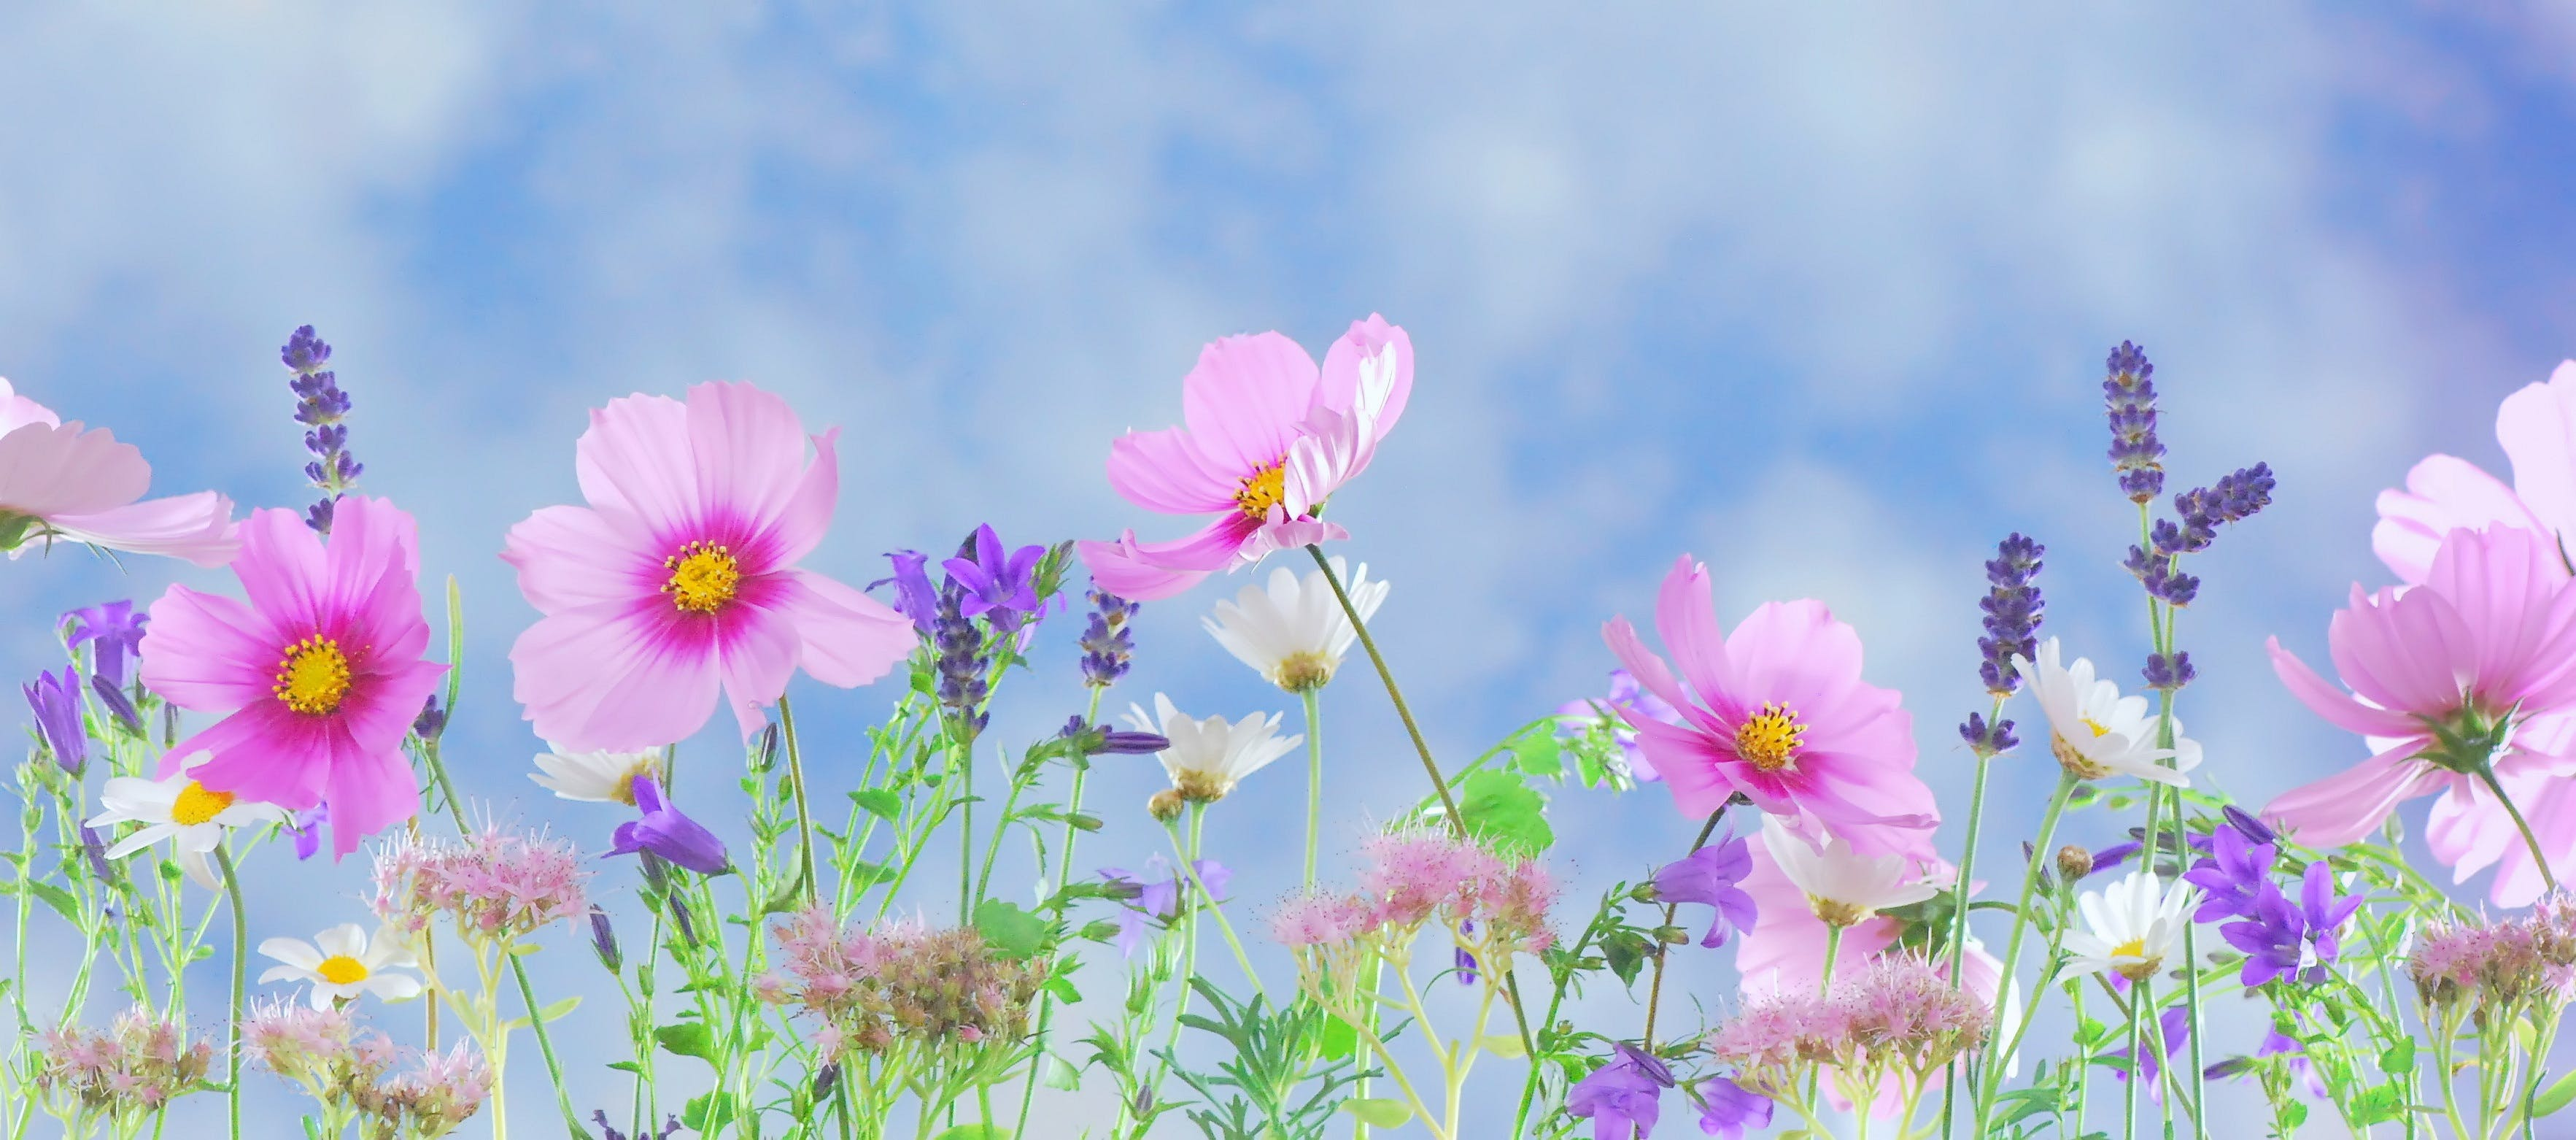 1000 Beautiful Spring Flowers Photos Pexels Free Stock Photos